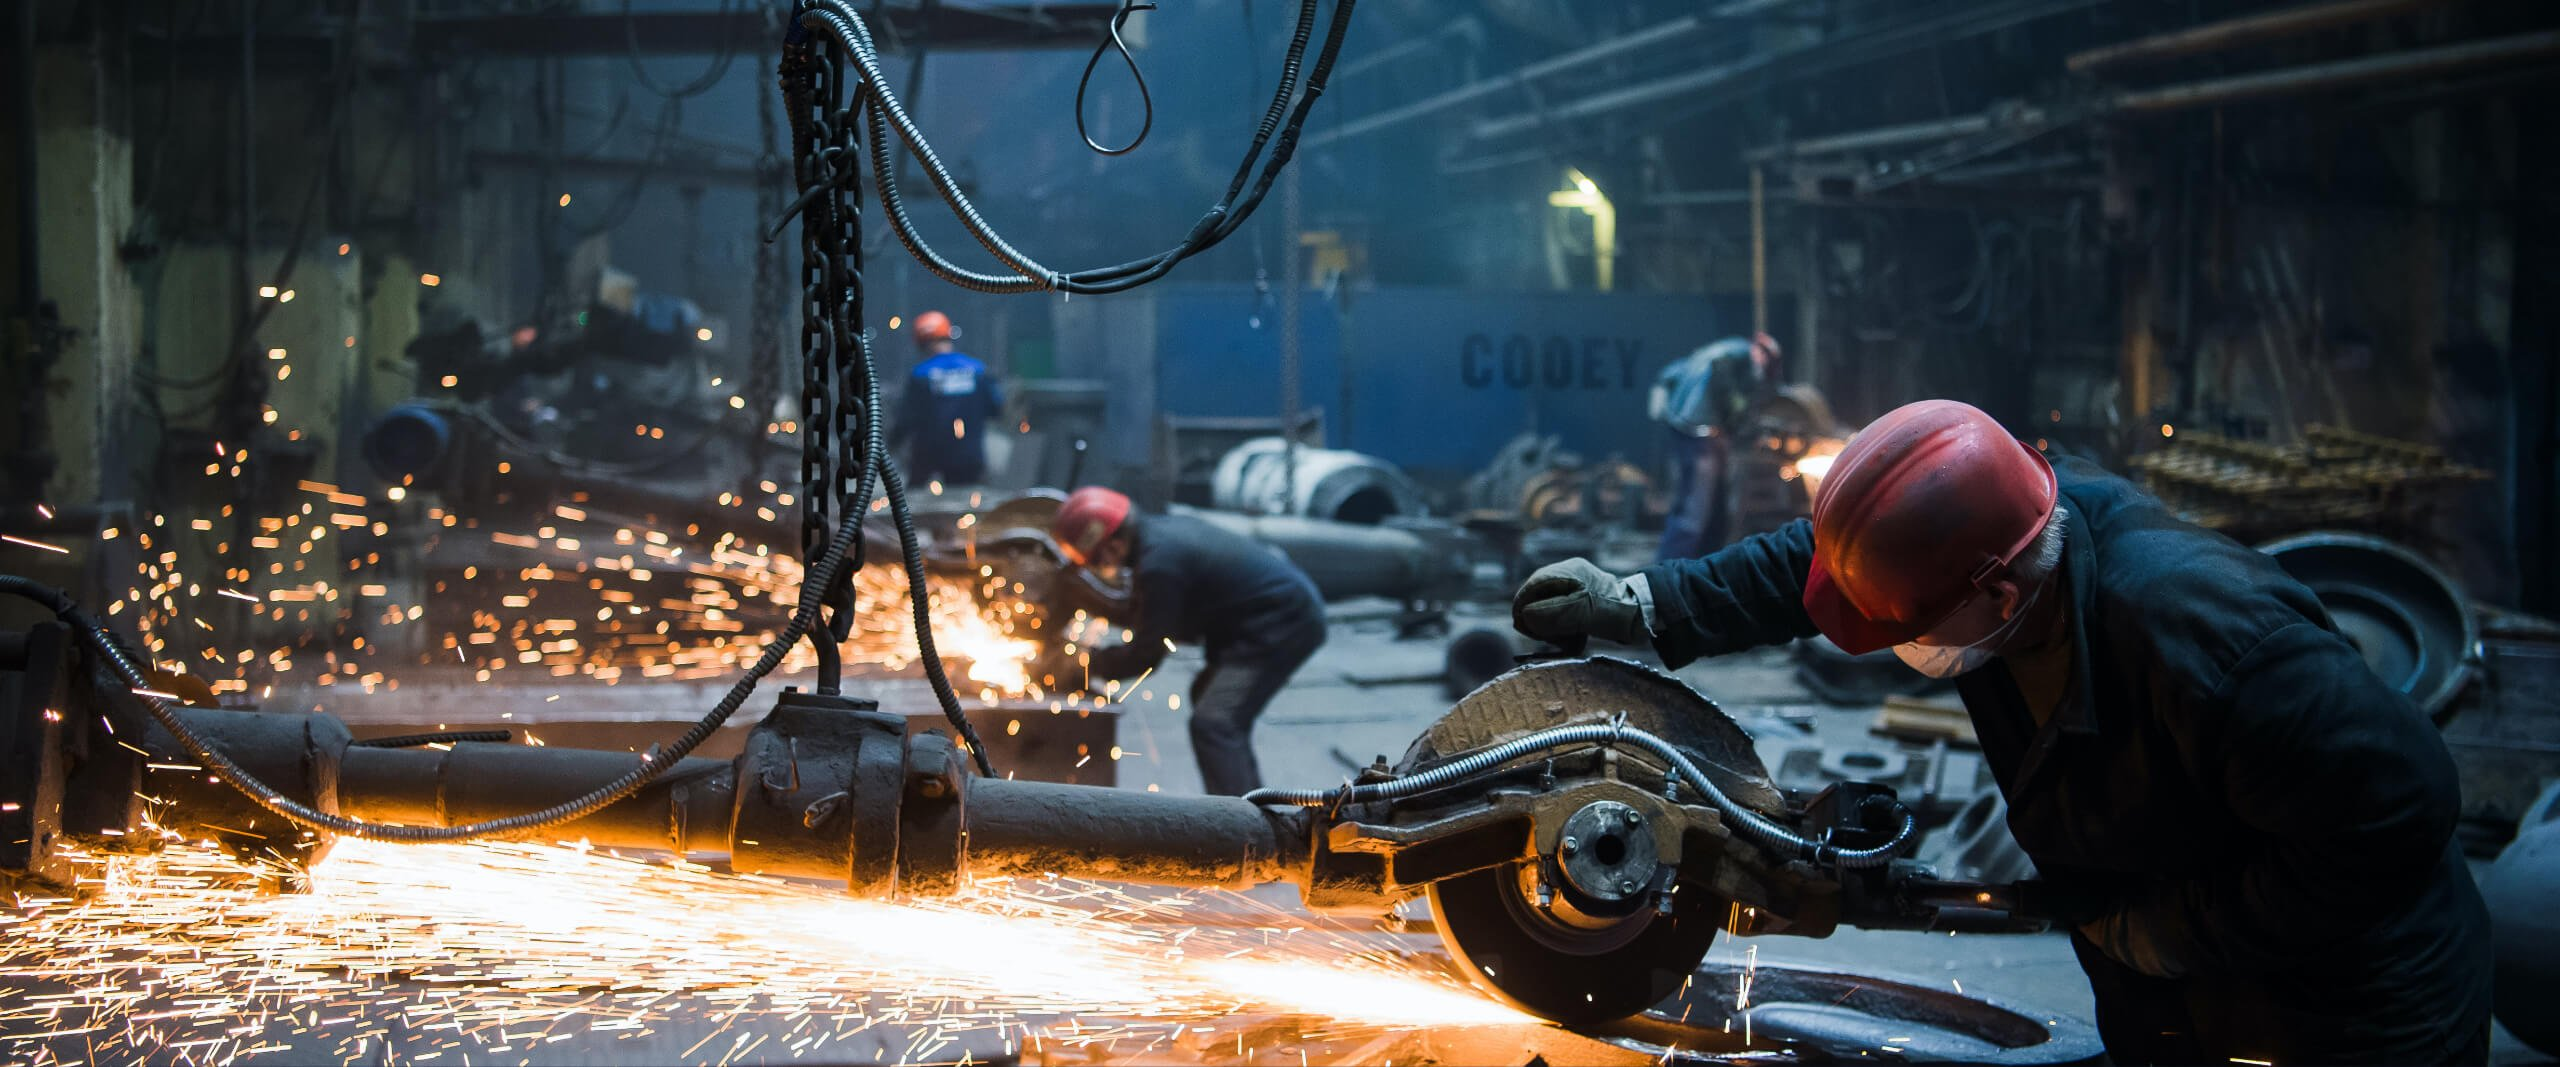 Sparks fly as factory workers cut steel with large saws in factory setting